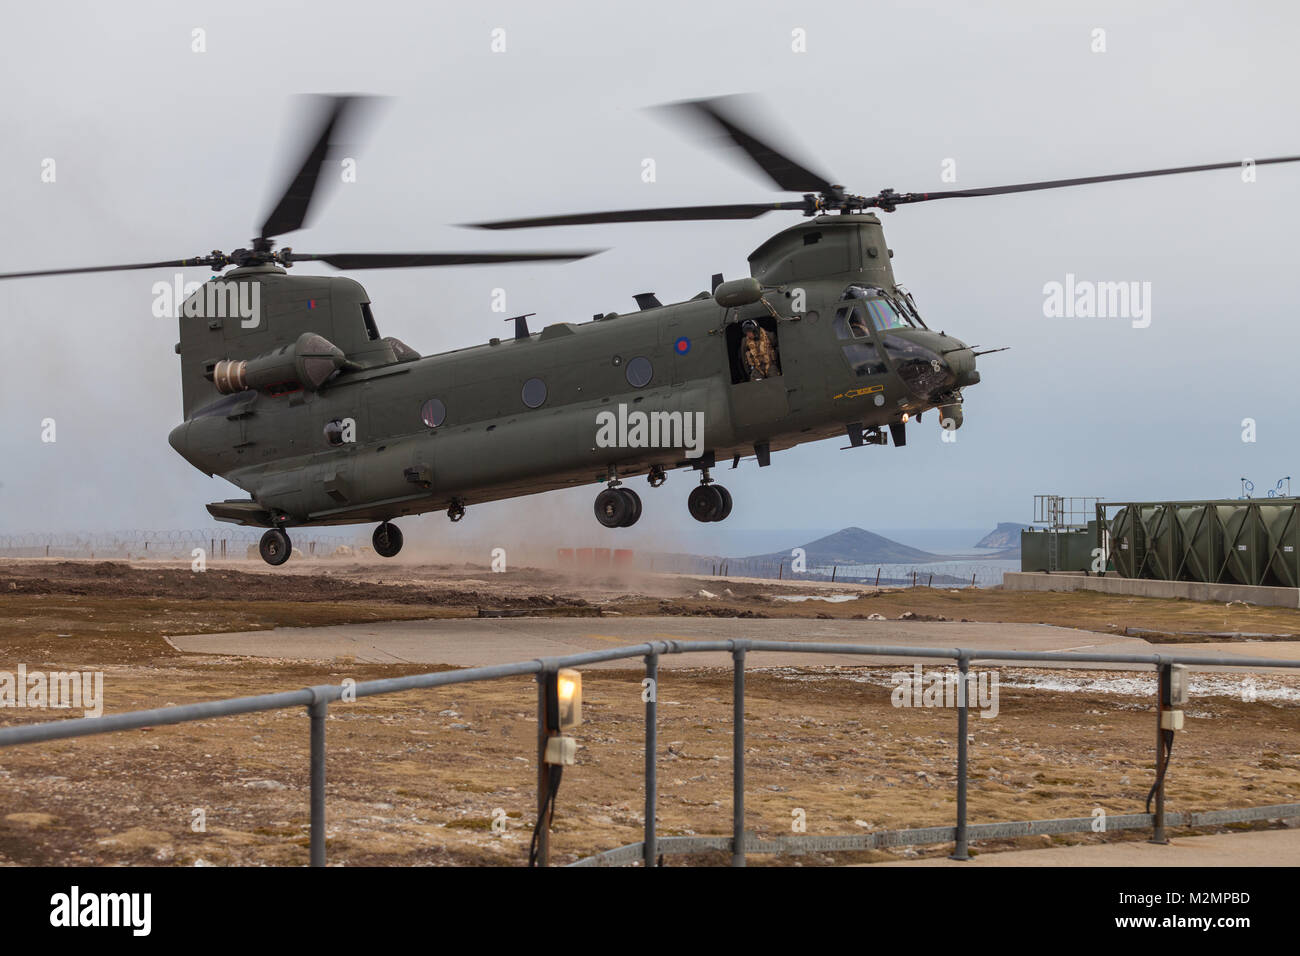 RAF Chinook coming into land on helipad in the Falkland Islands - Stock Image